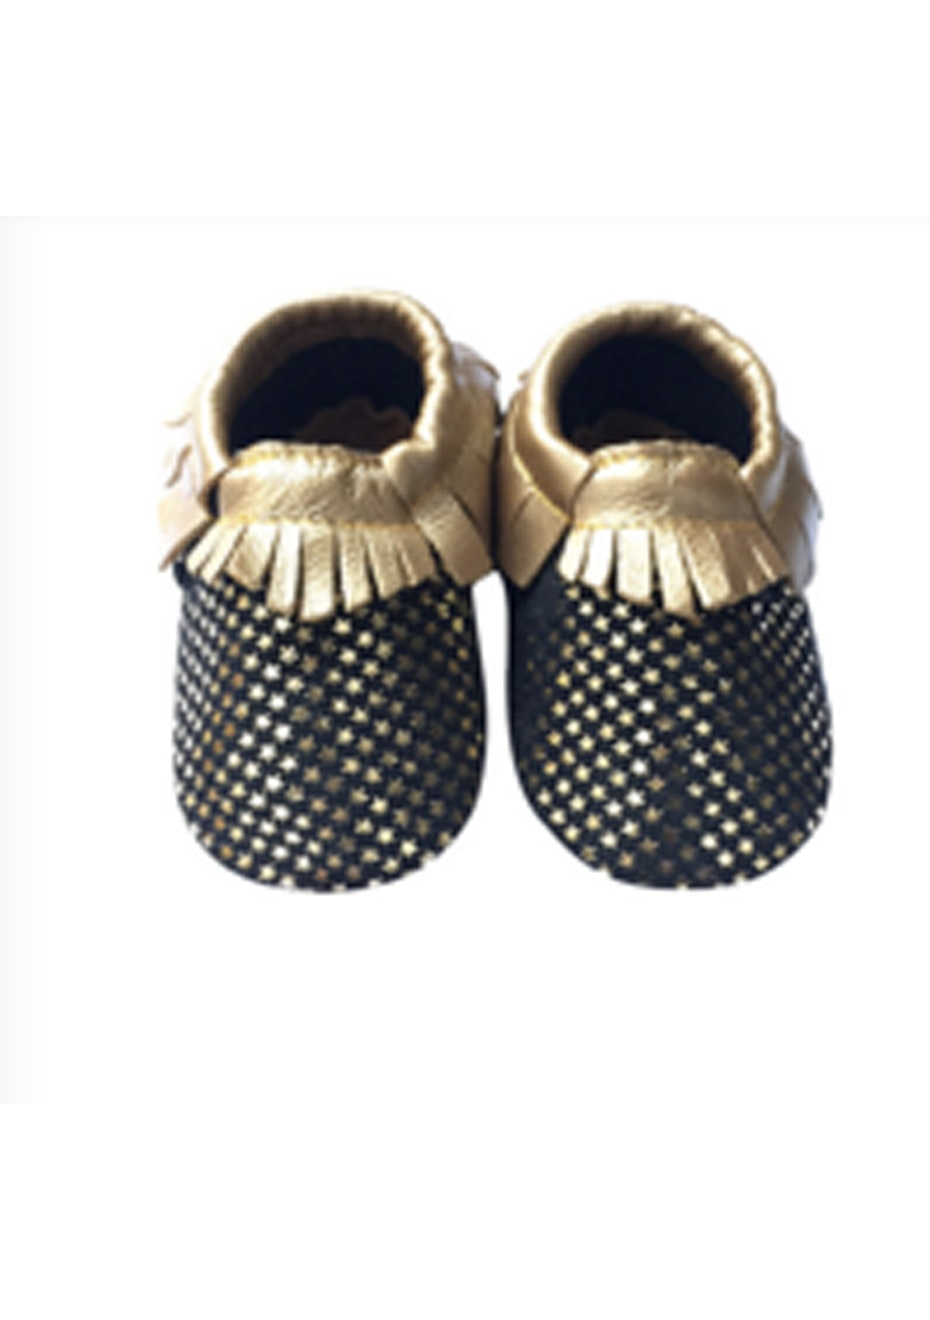 Baby  Leather Shoes - Gold/Black